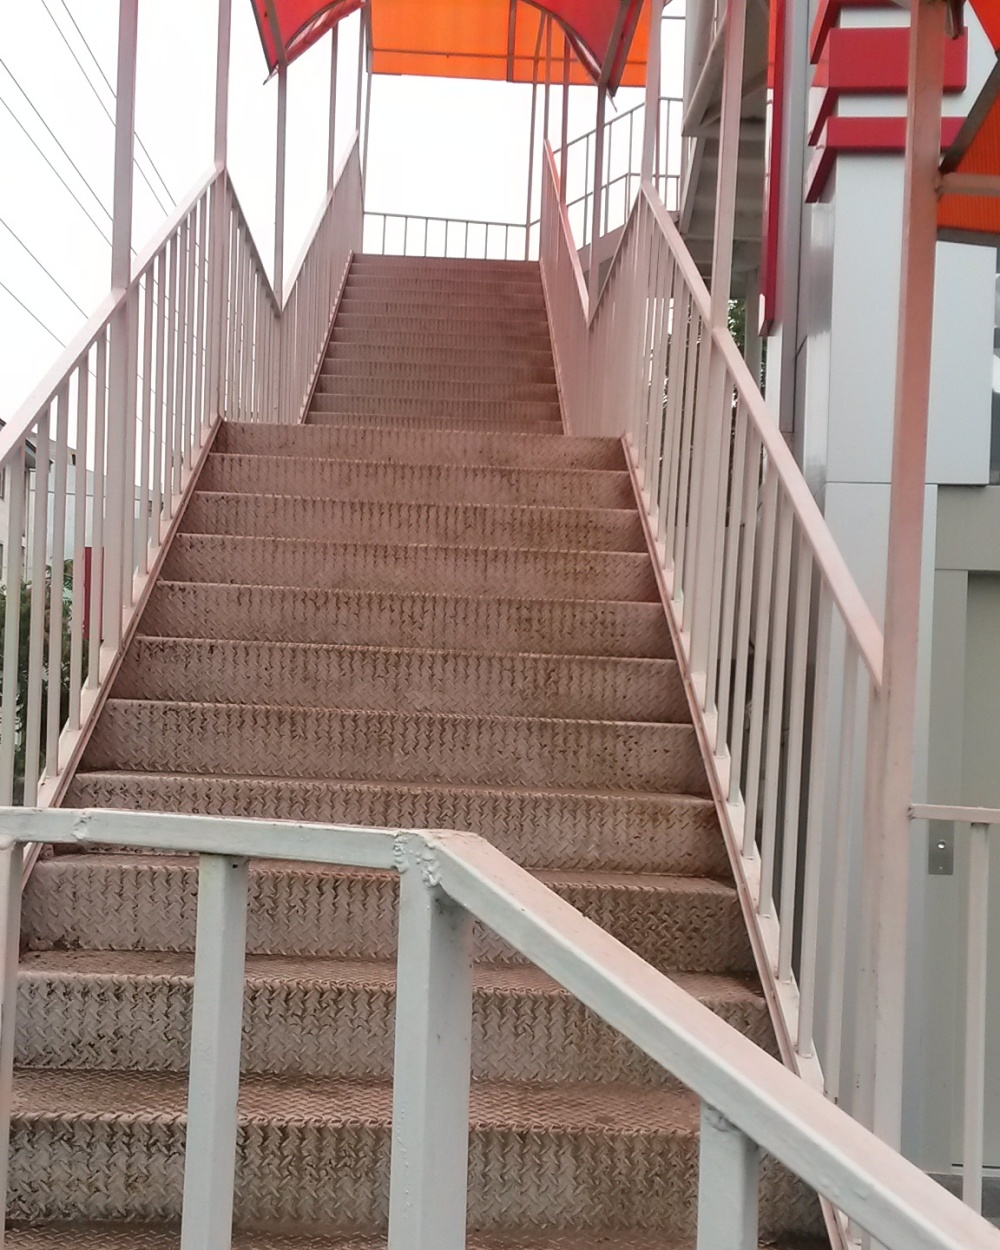 24 stairs & 24 stairs